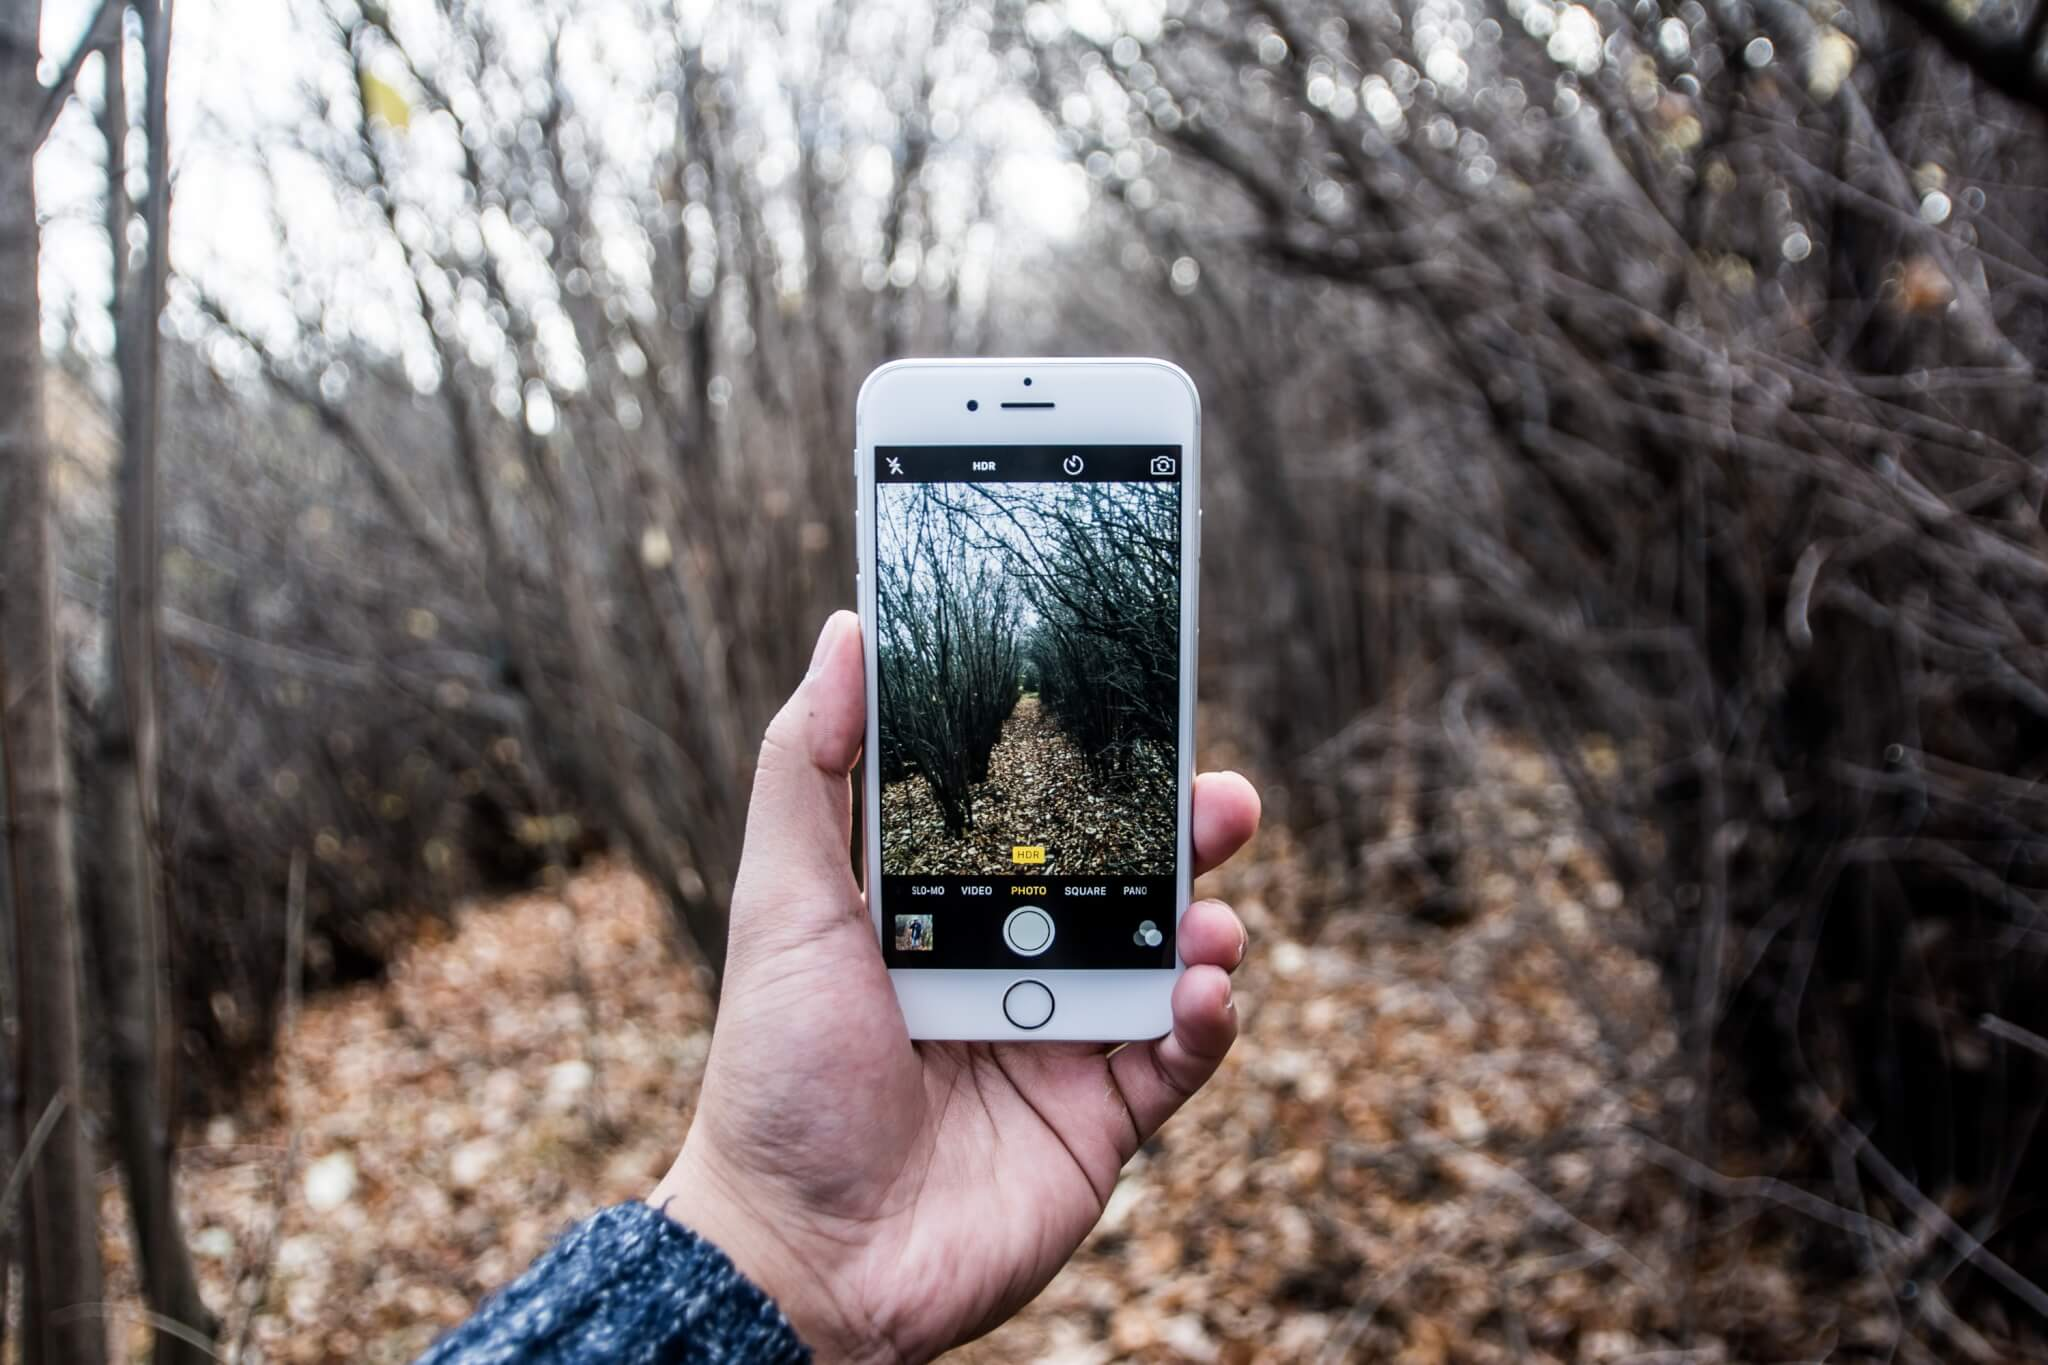 iPhone5s being used to take a picture of a forest